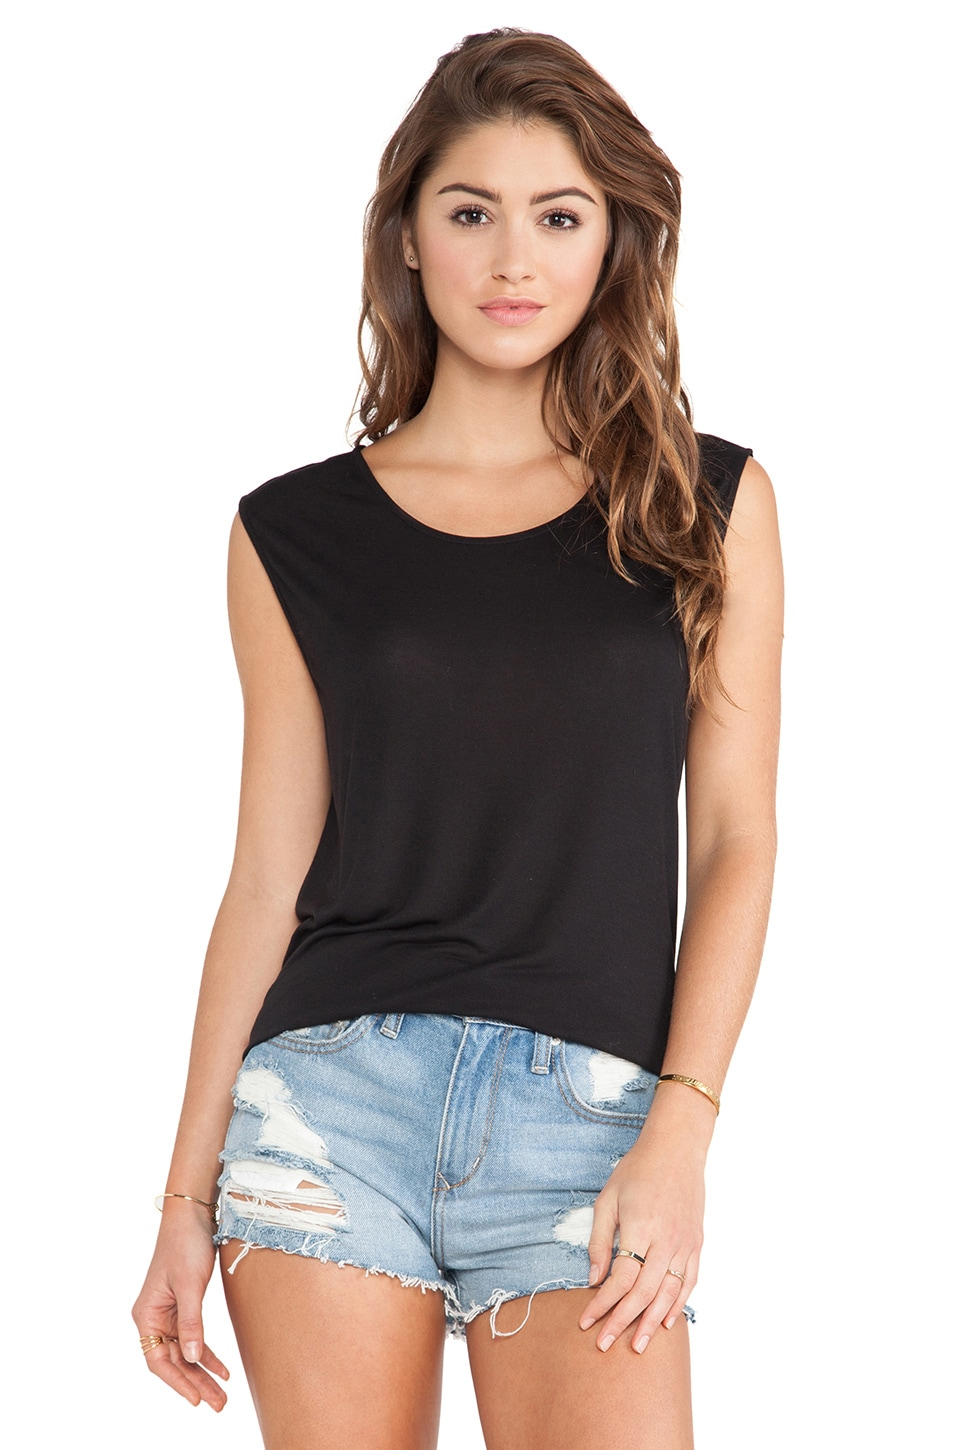 Paige Denim Gracelyn Tee in Black